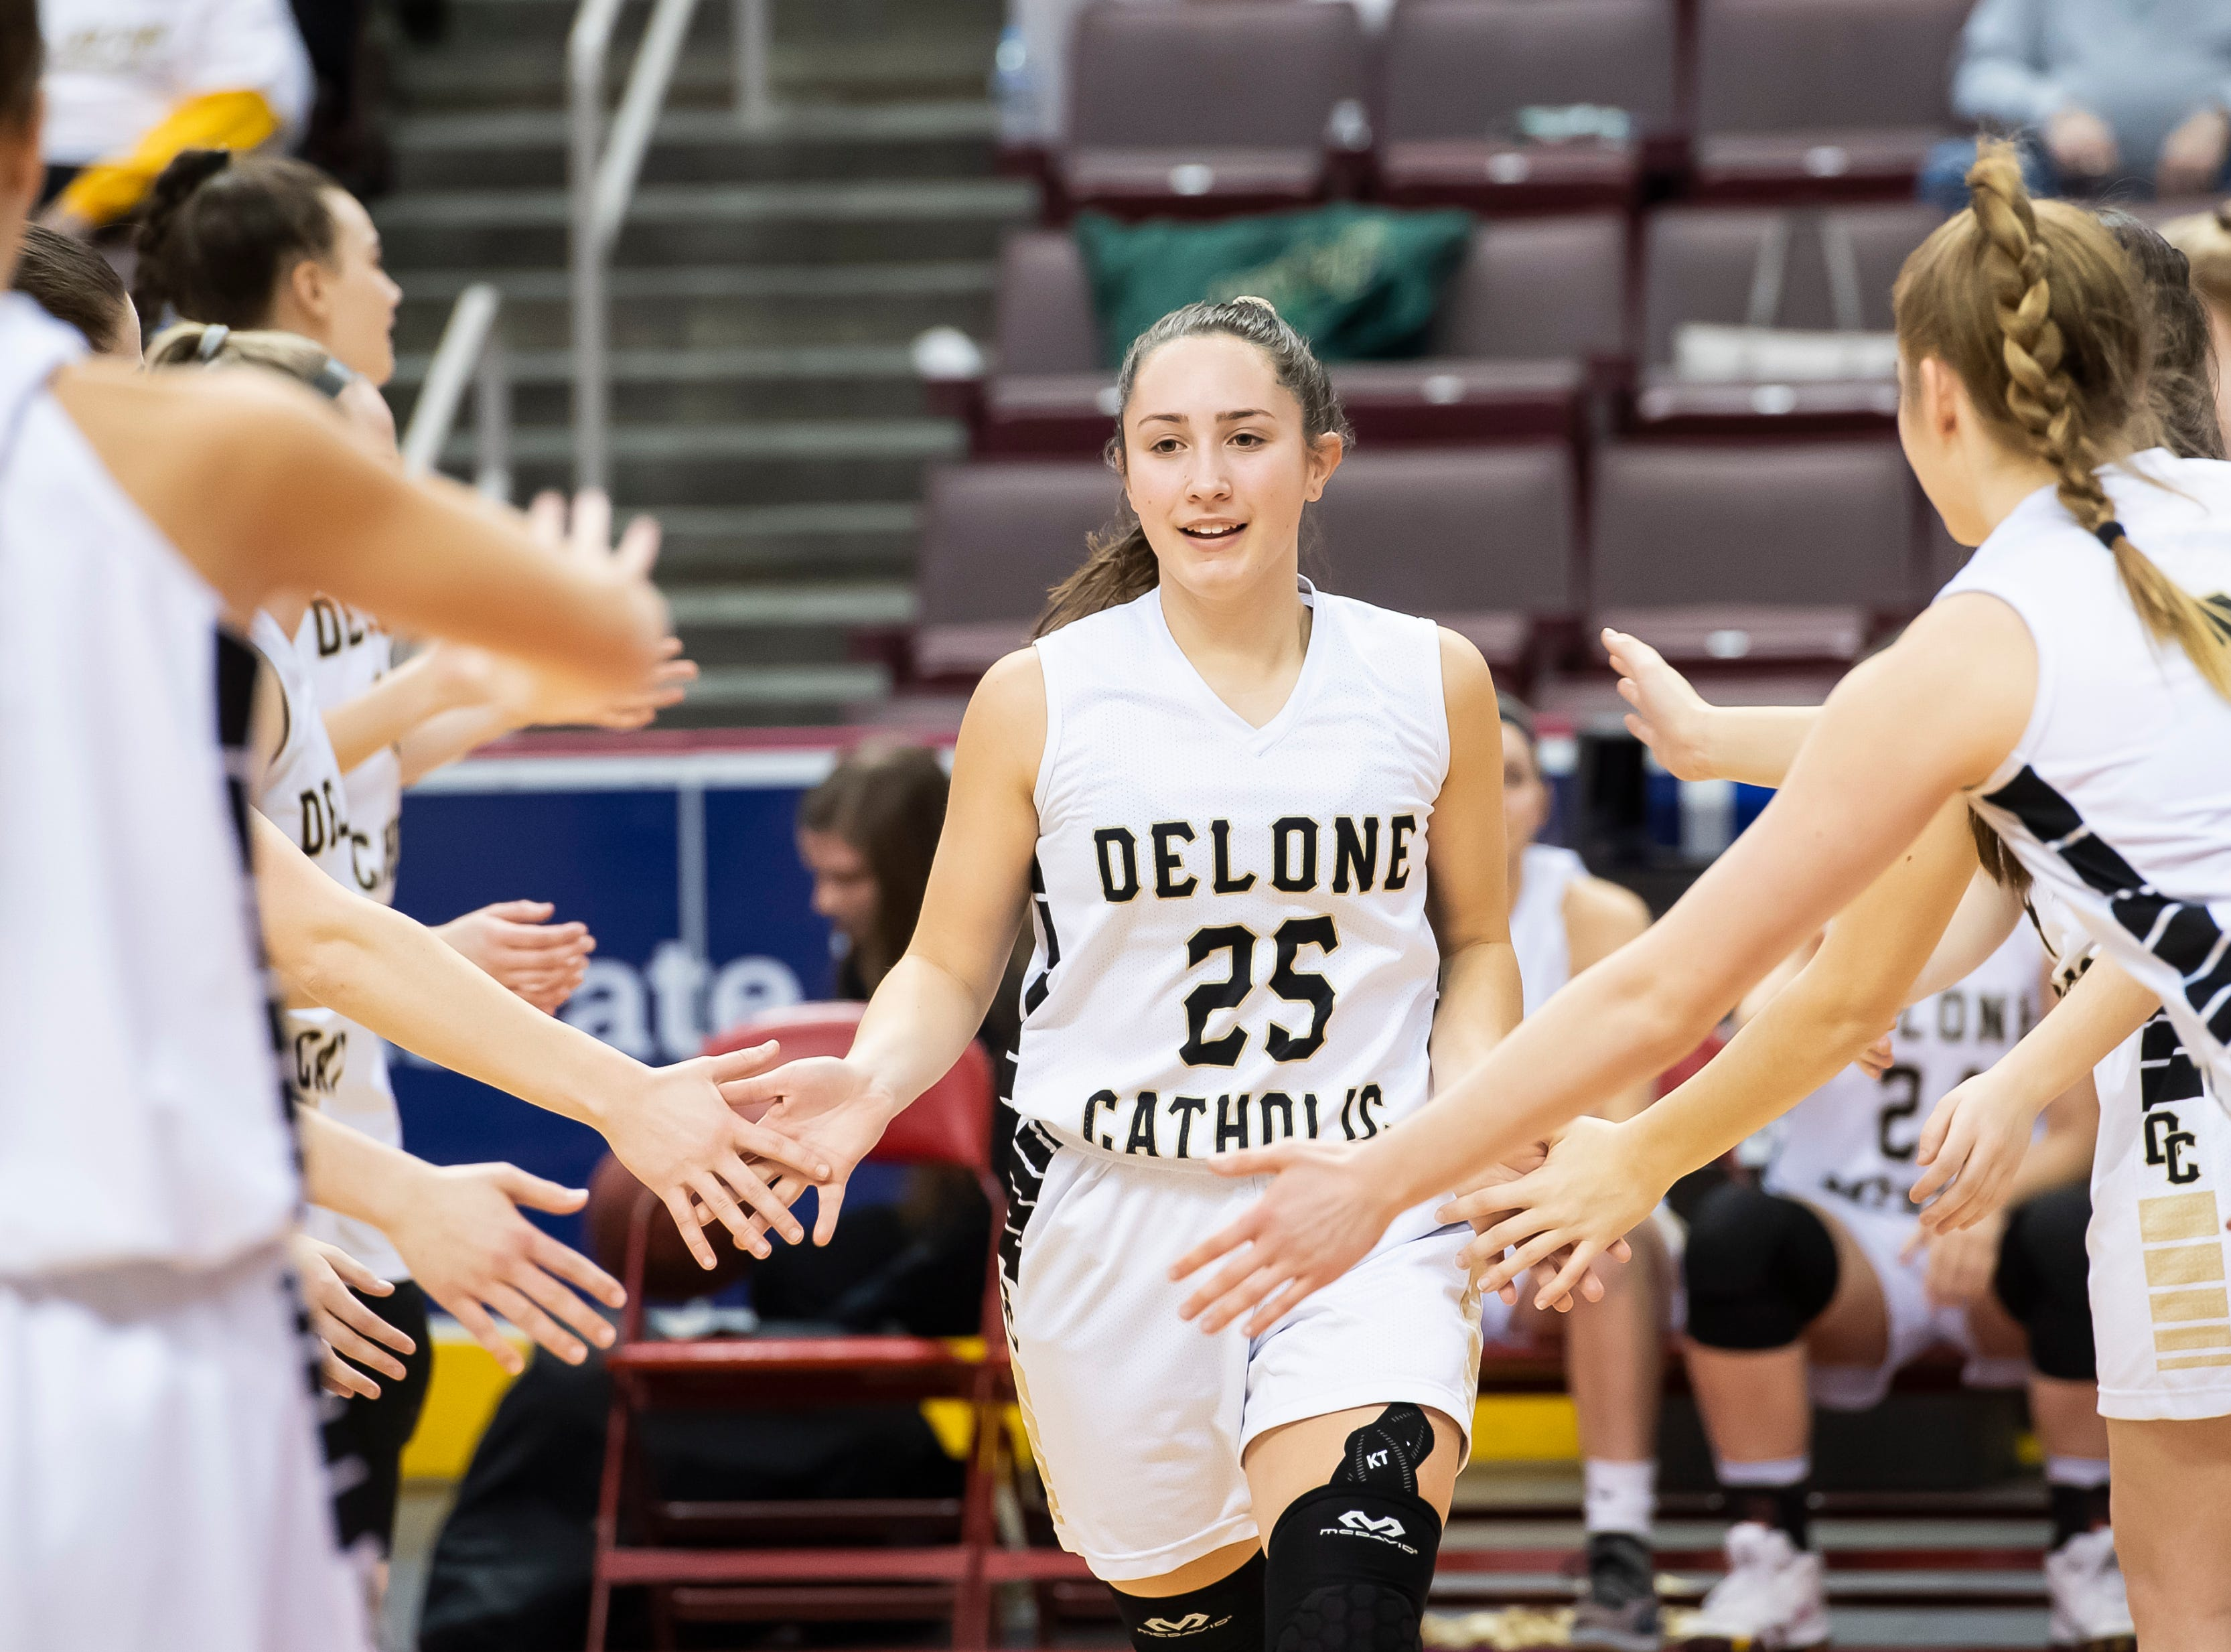 Delone Catholic's Camryn Felix is introduced during the starting lineups before the District 3 3A girls championship game against Trinity at the Giant Center in Hershey Wednesday, Feb. 27, 2019. The Squirettes fell 44-33.